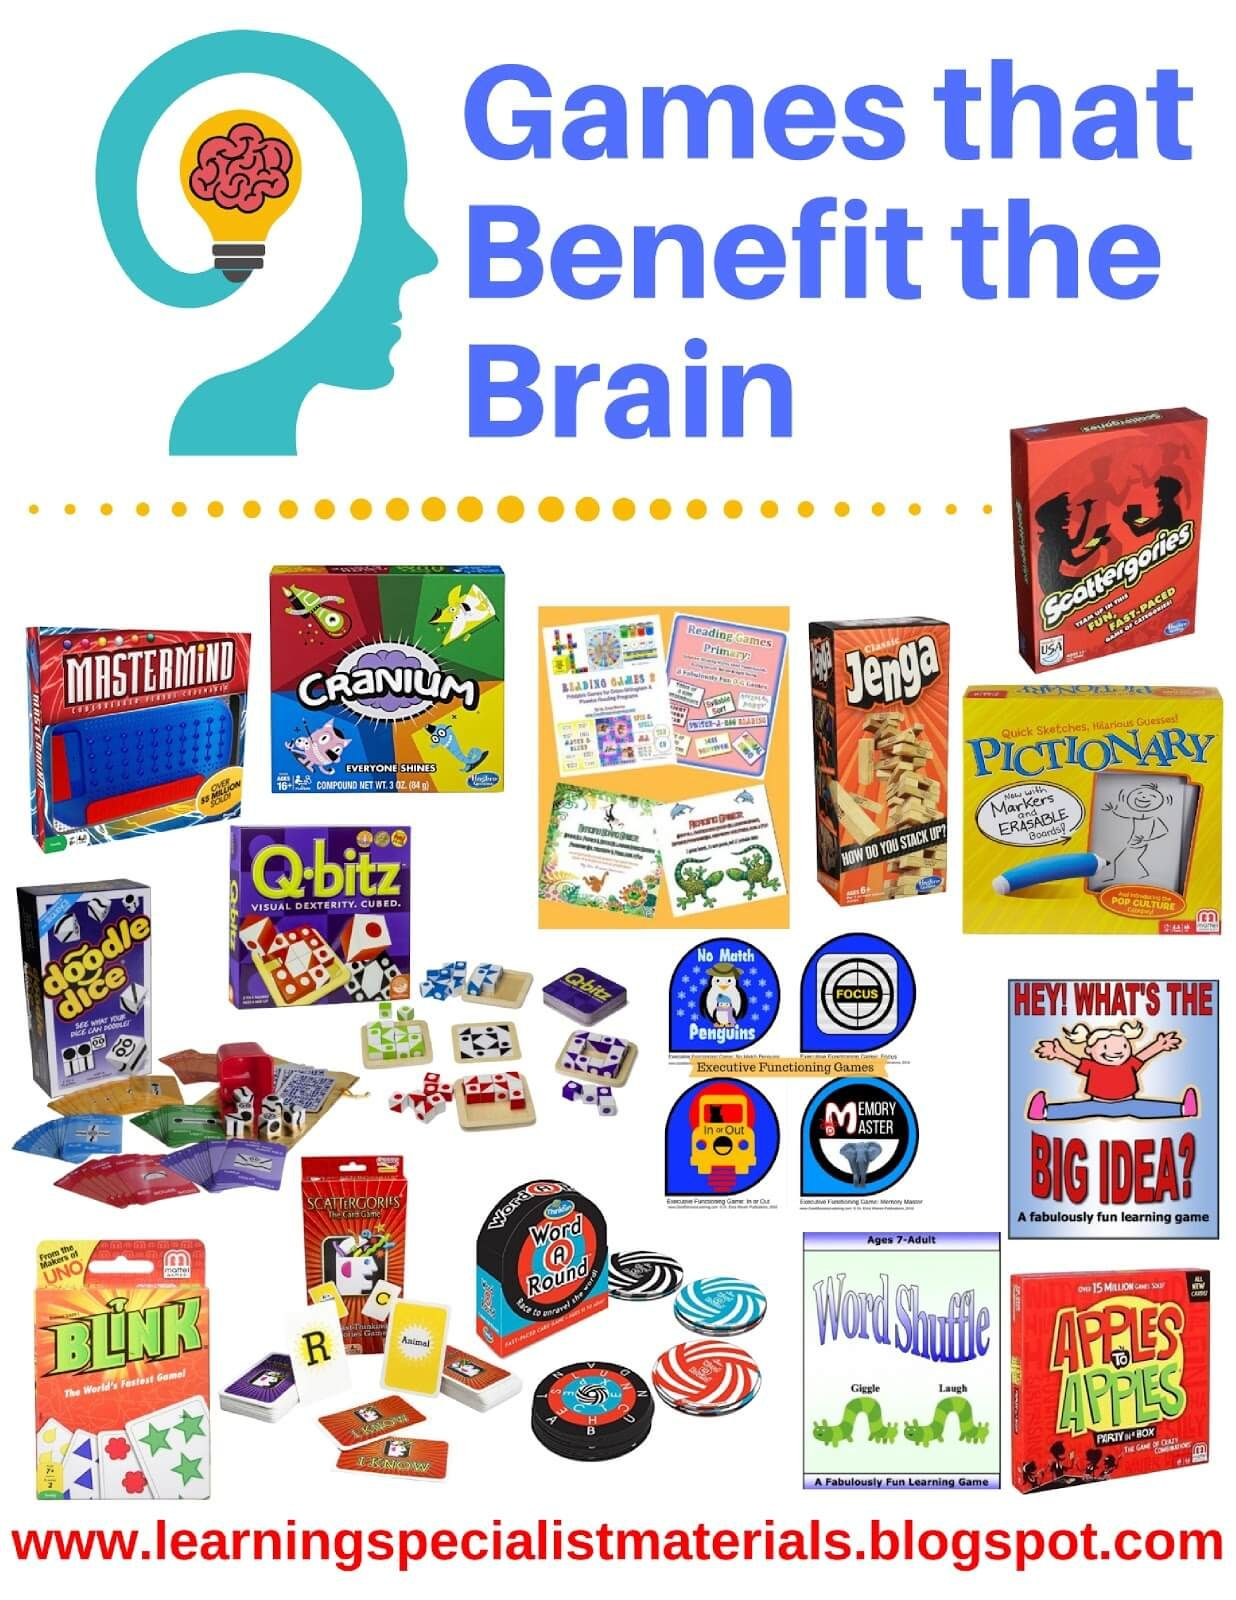 Games that Benefit the Brain (With images) Dyslexia